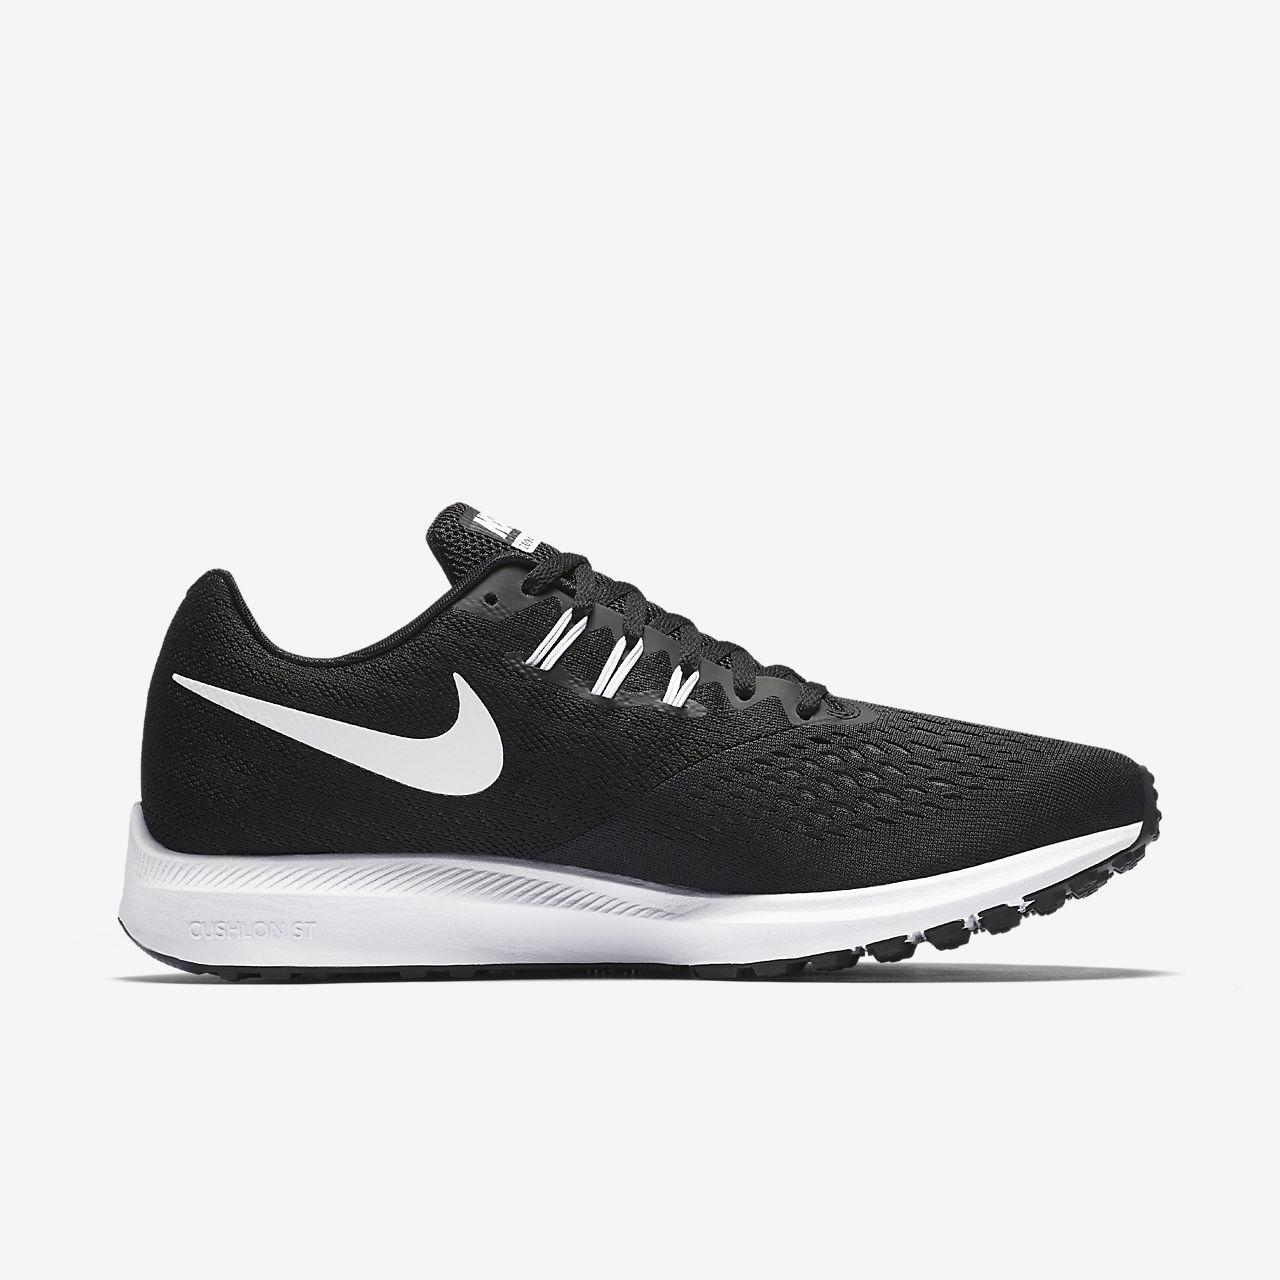 ... Chaussure de running Nike Zoom Winflo 4 pour Homme